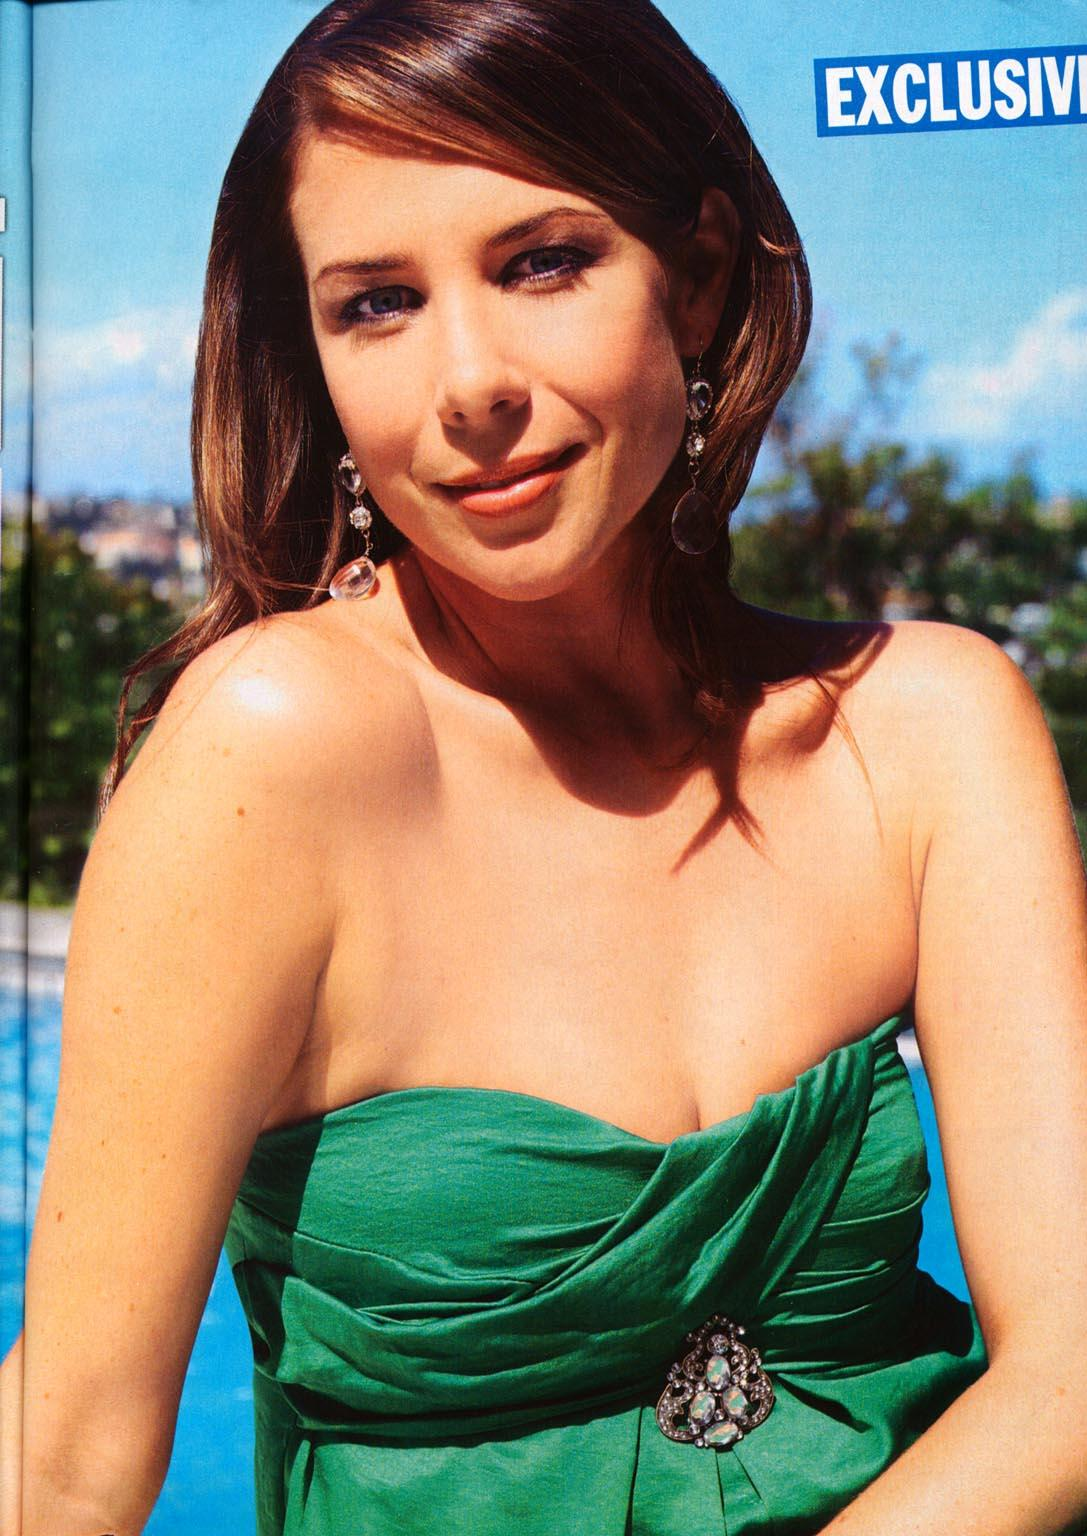 59522_Kate_Ritchie53_122_189lo.jpg